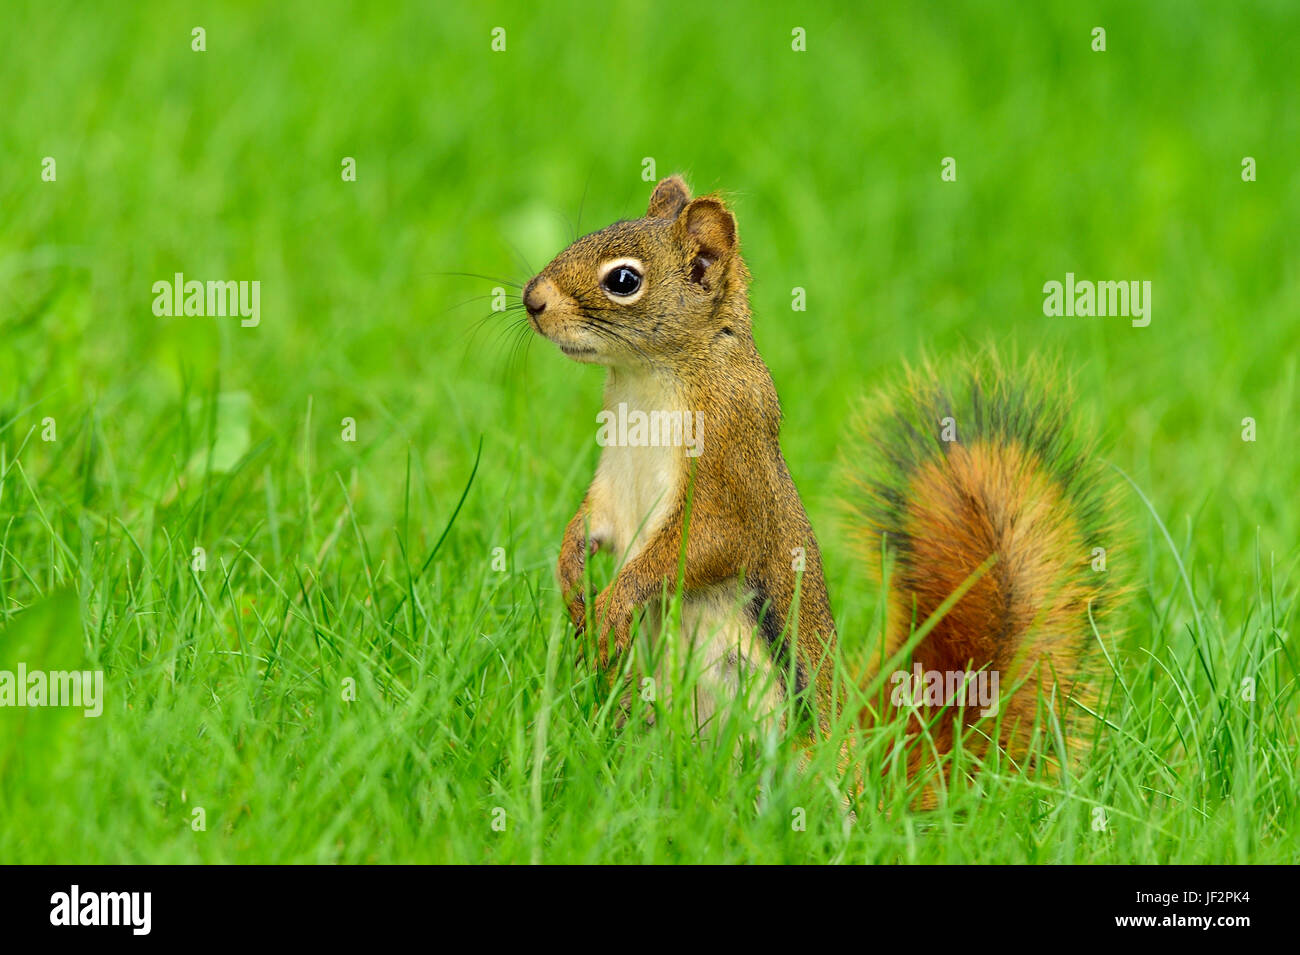 A red squirrel  Tamiasciurus hudsonicus; standing on his rear feet in the deep grass in rural Alberta Canada Stock Photo